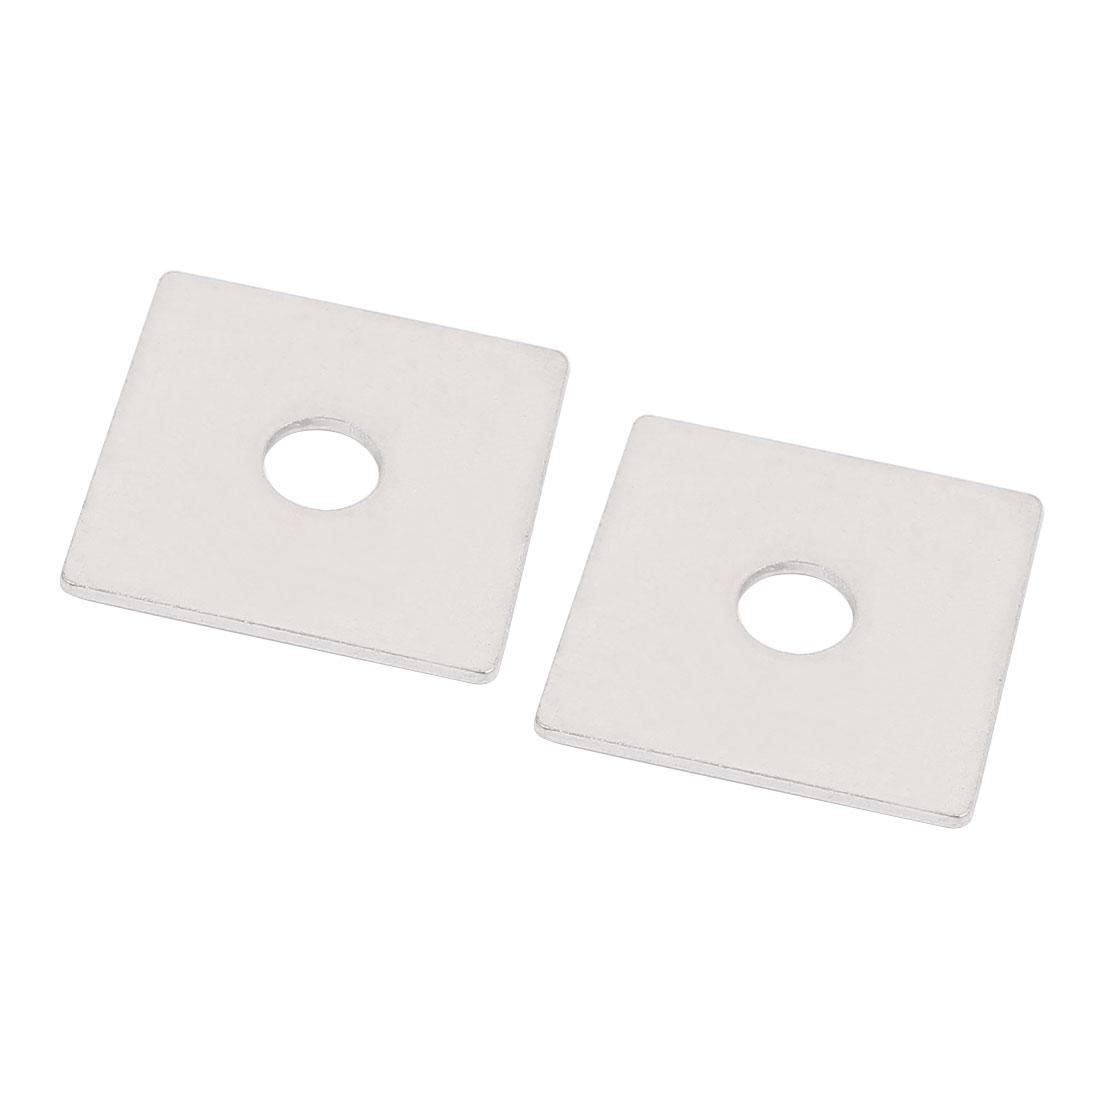 M10 x 40mm Square Stainless Steel Flat Repair Plate Silver Tone 2pcs